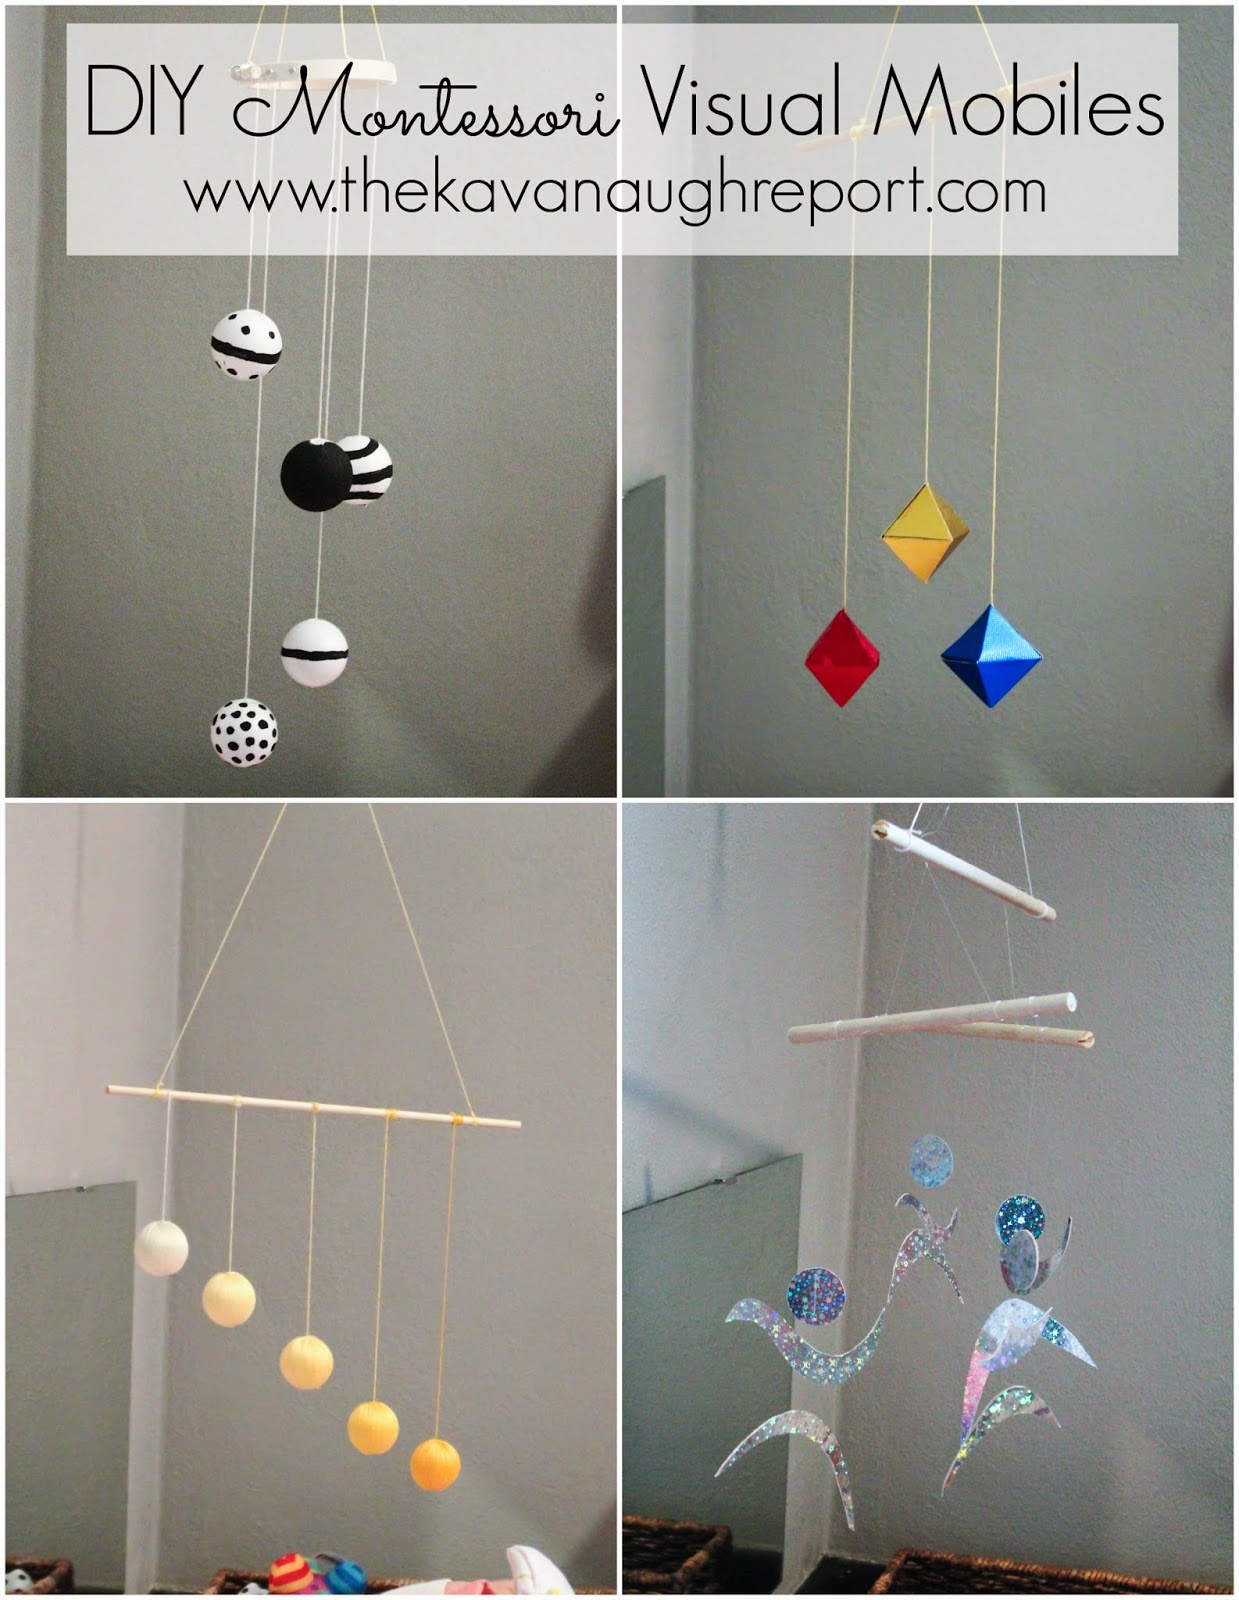 montessori infant mobiles visual series